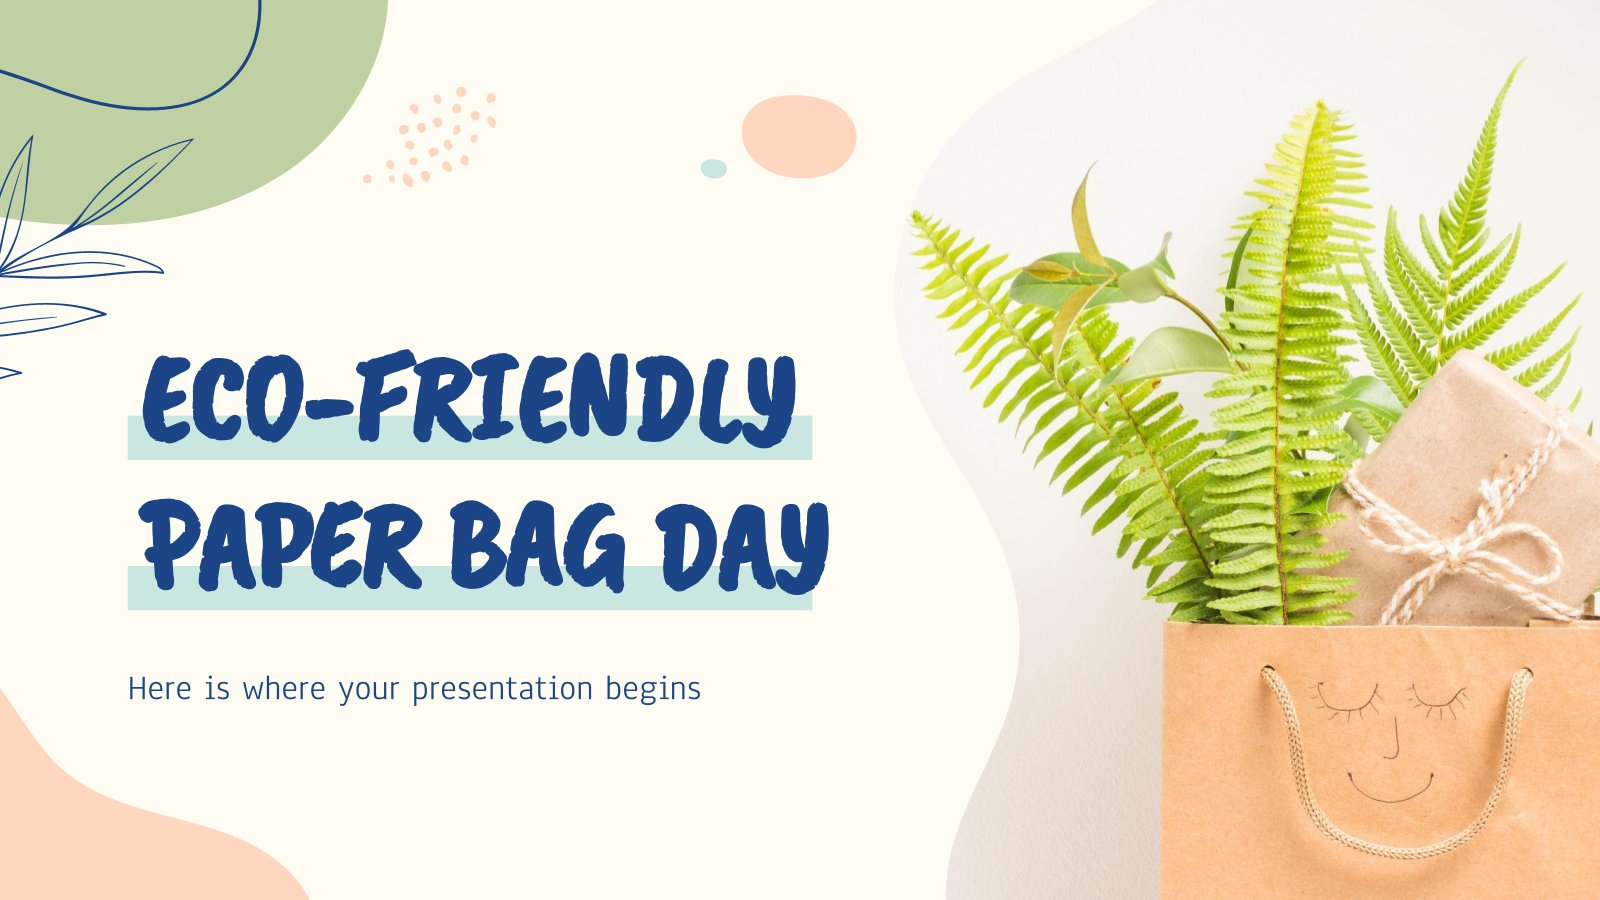 Eco-Friendly Paper Bag Day presentation template